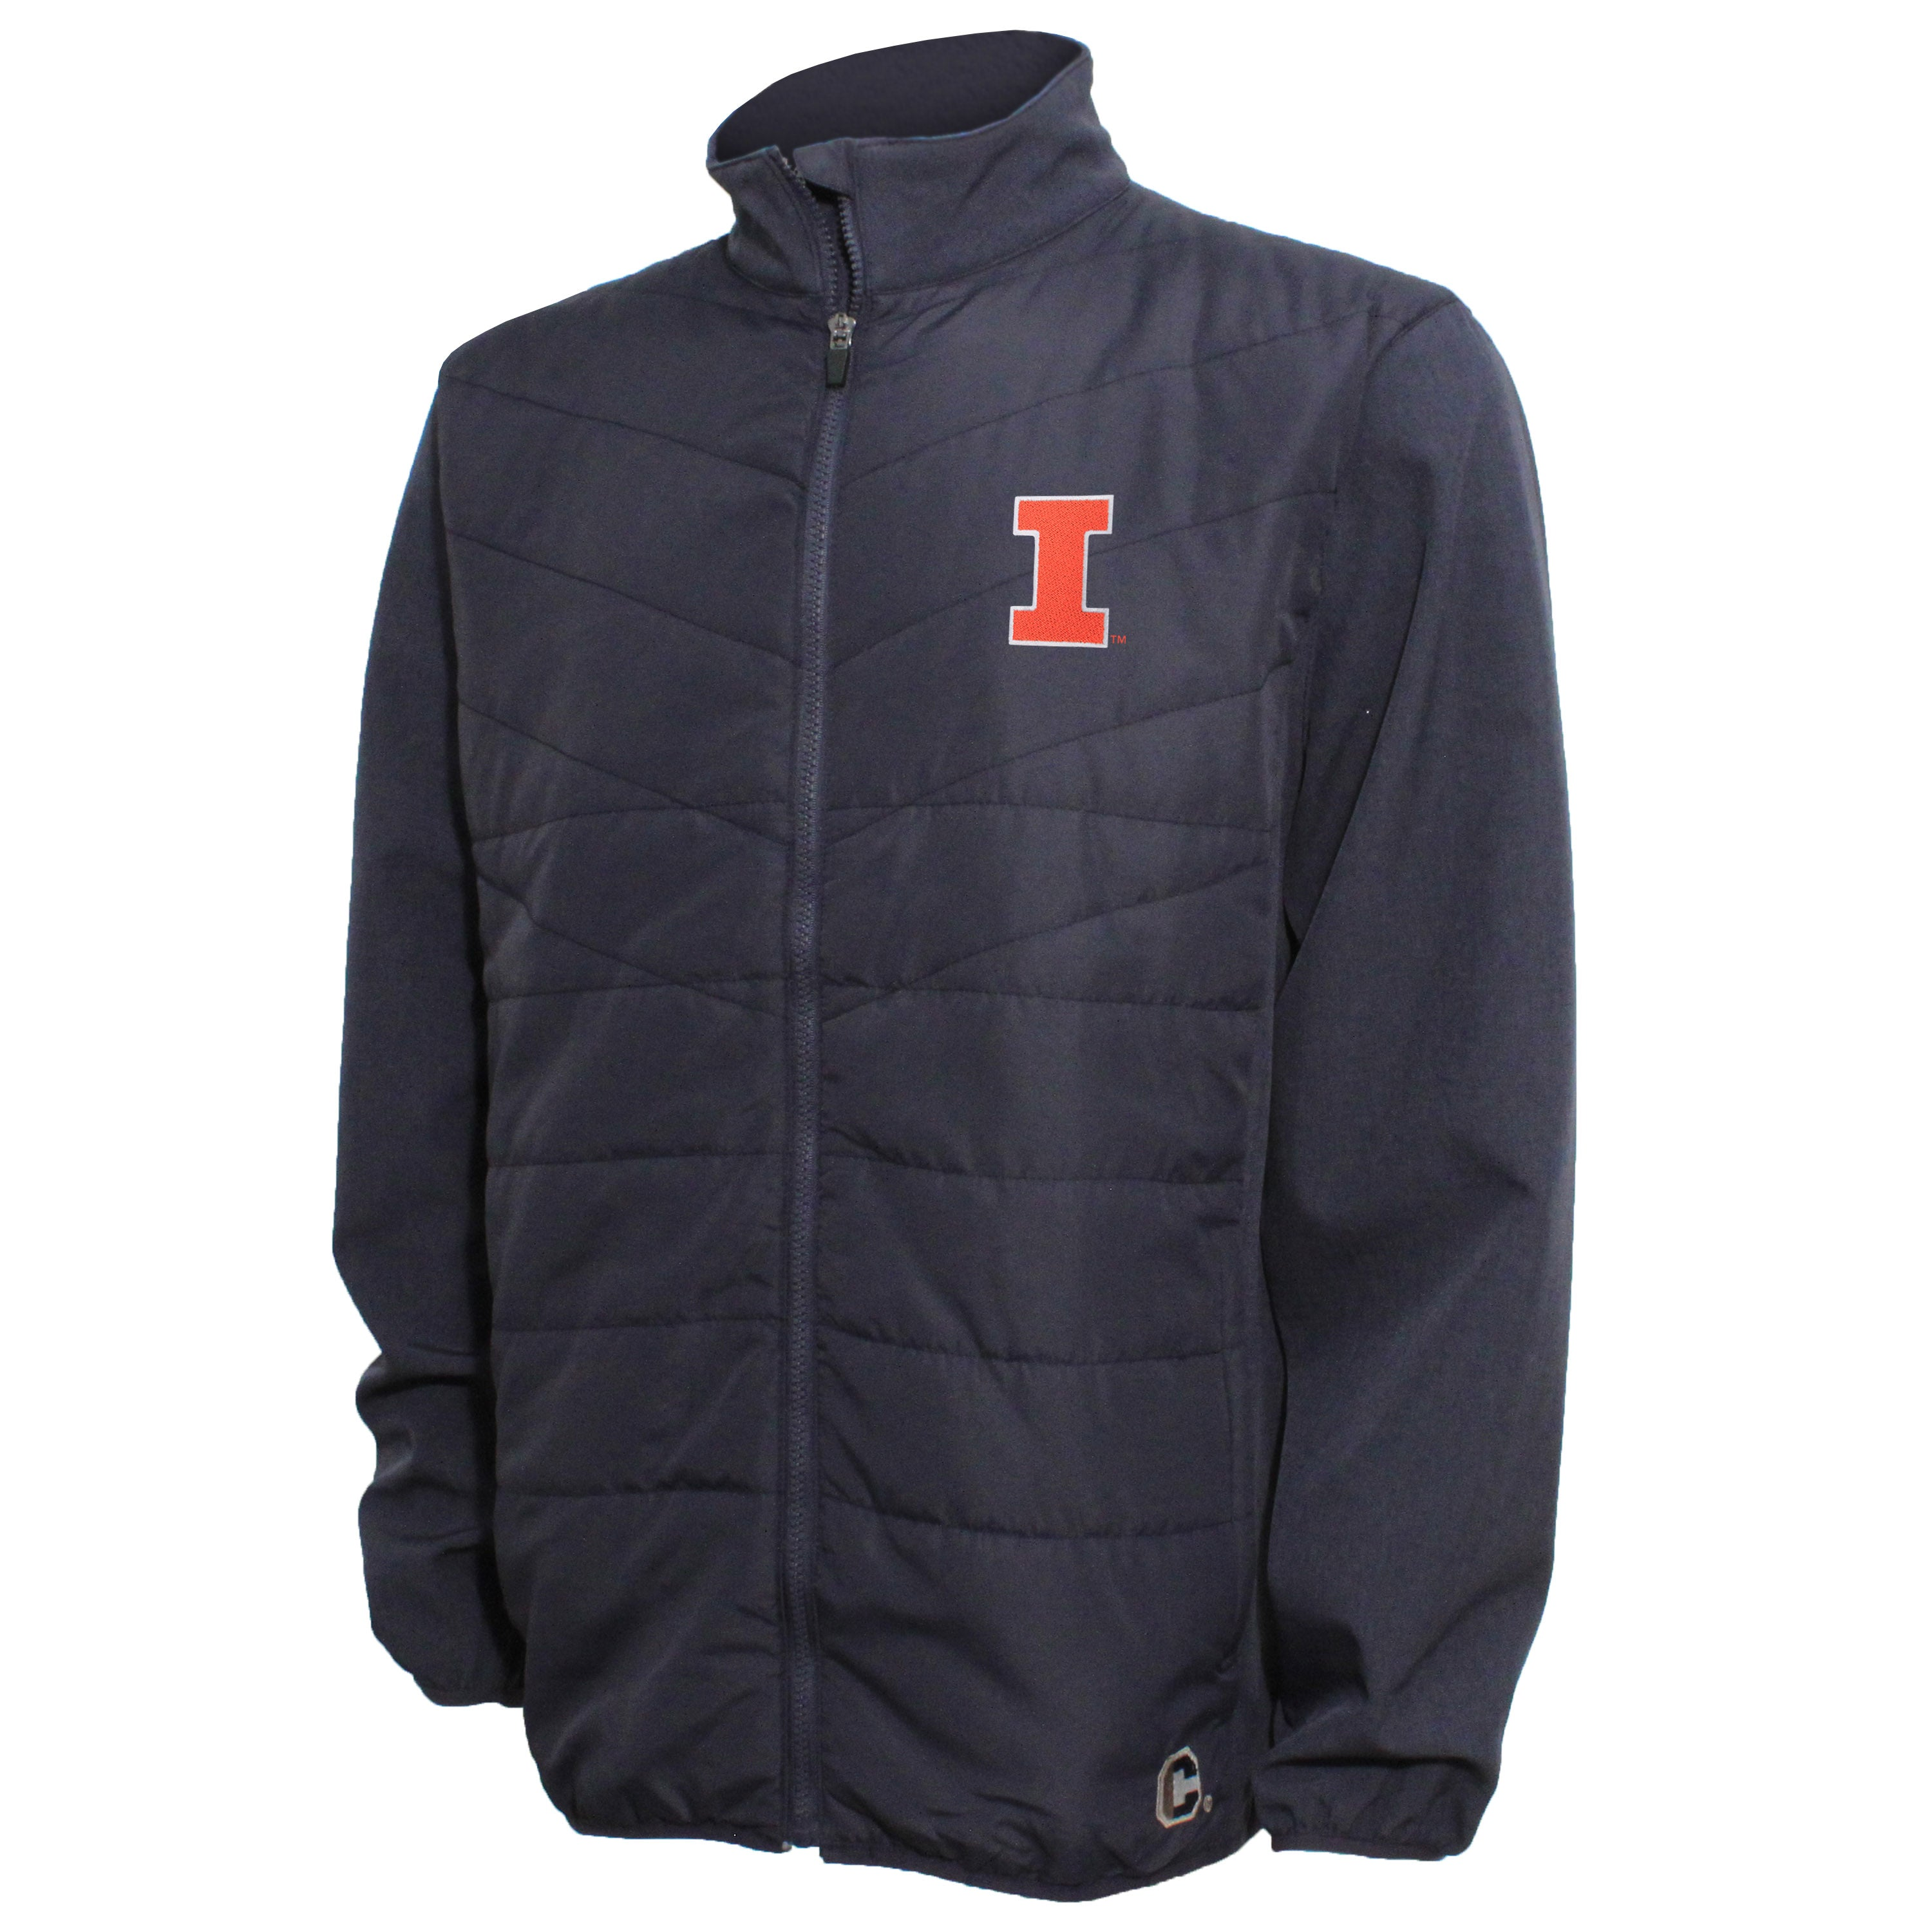 Crable Illinois Men's Navy Quilted Panel Jacket